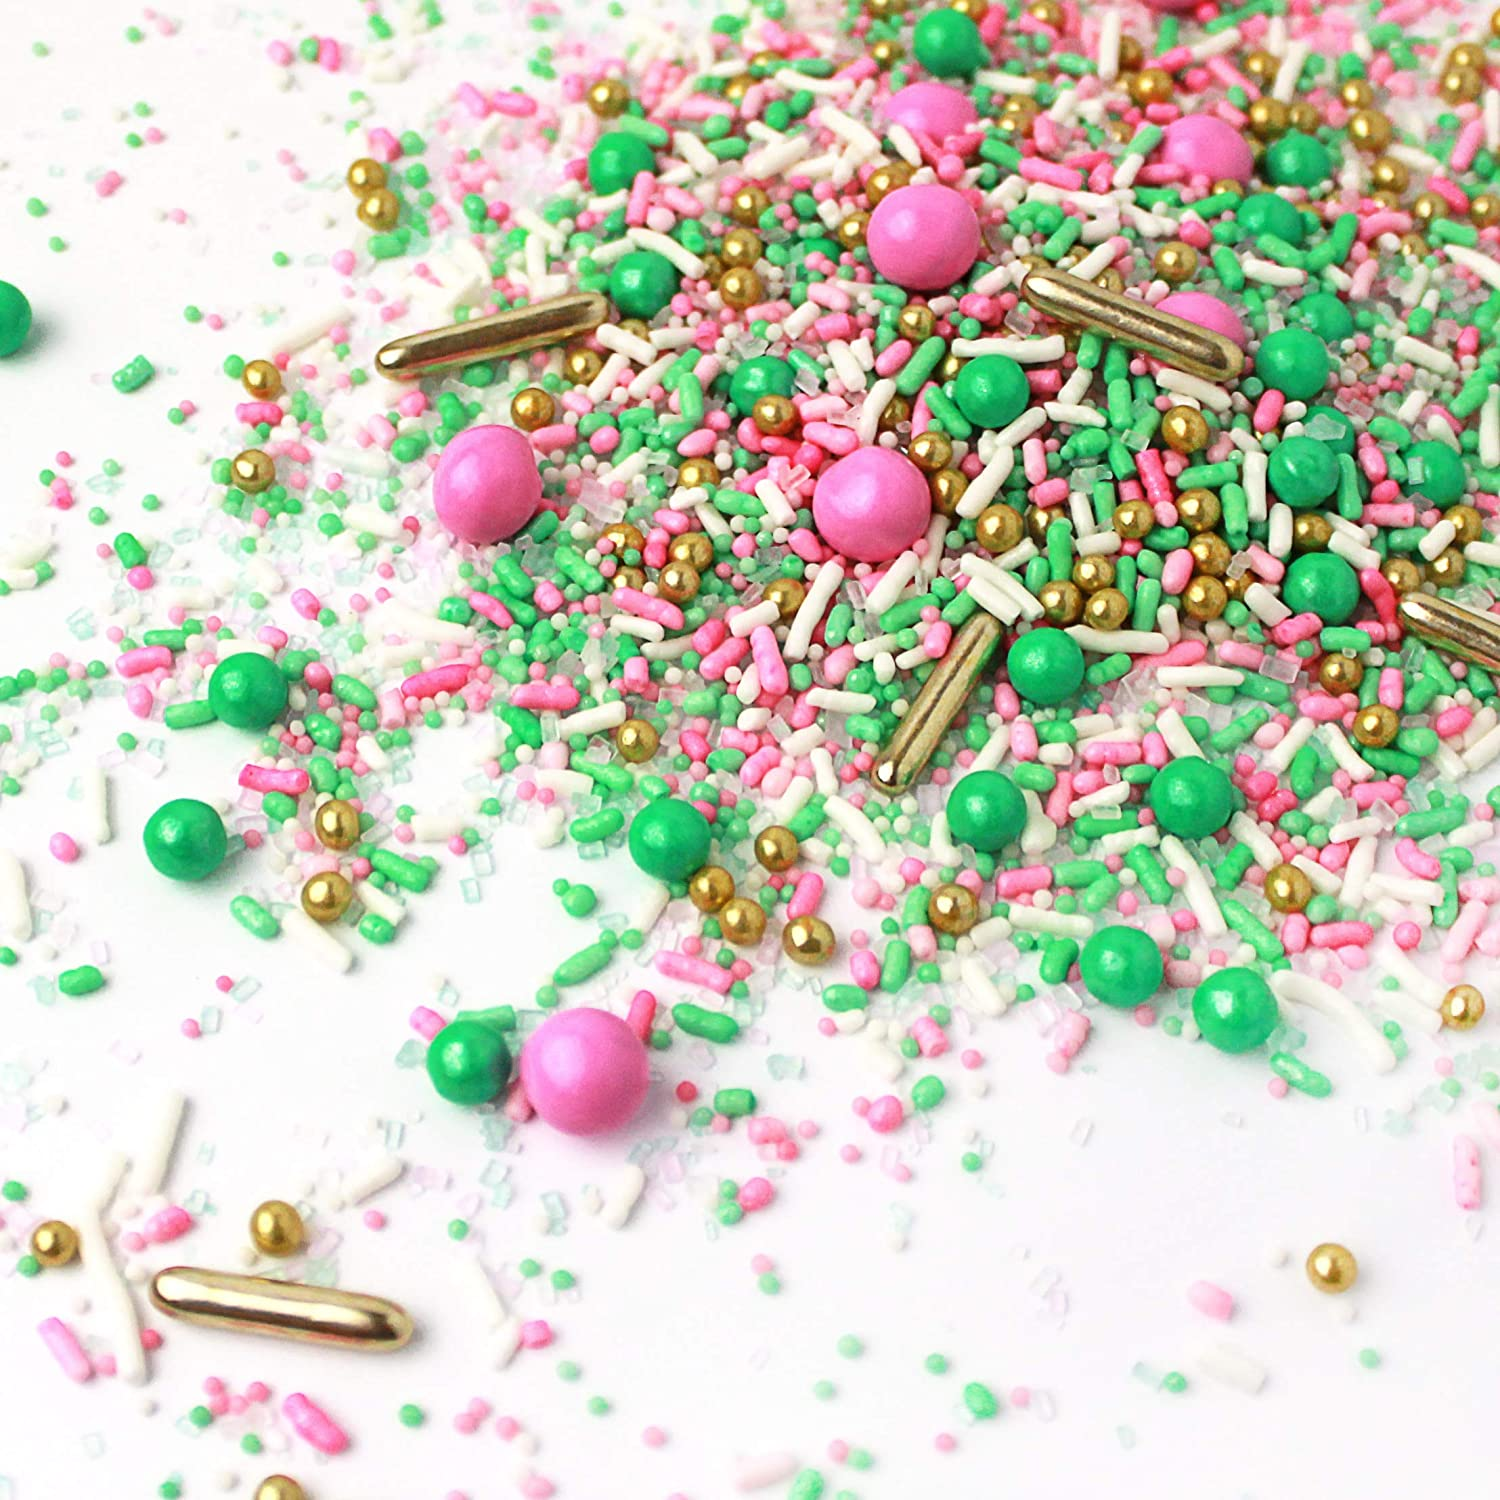 Signature Pink| Pastel White Mint Pastel Ladies Baby Shower Gender Reveal Colorful Candy Sprinkles Mix For Baking Edible Cake Decorations Cupcake Toppers Cookie Decorating Ice Cream Toppings, 4OZ